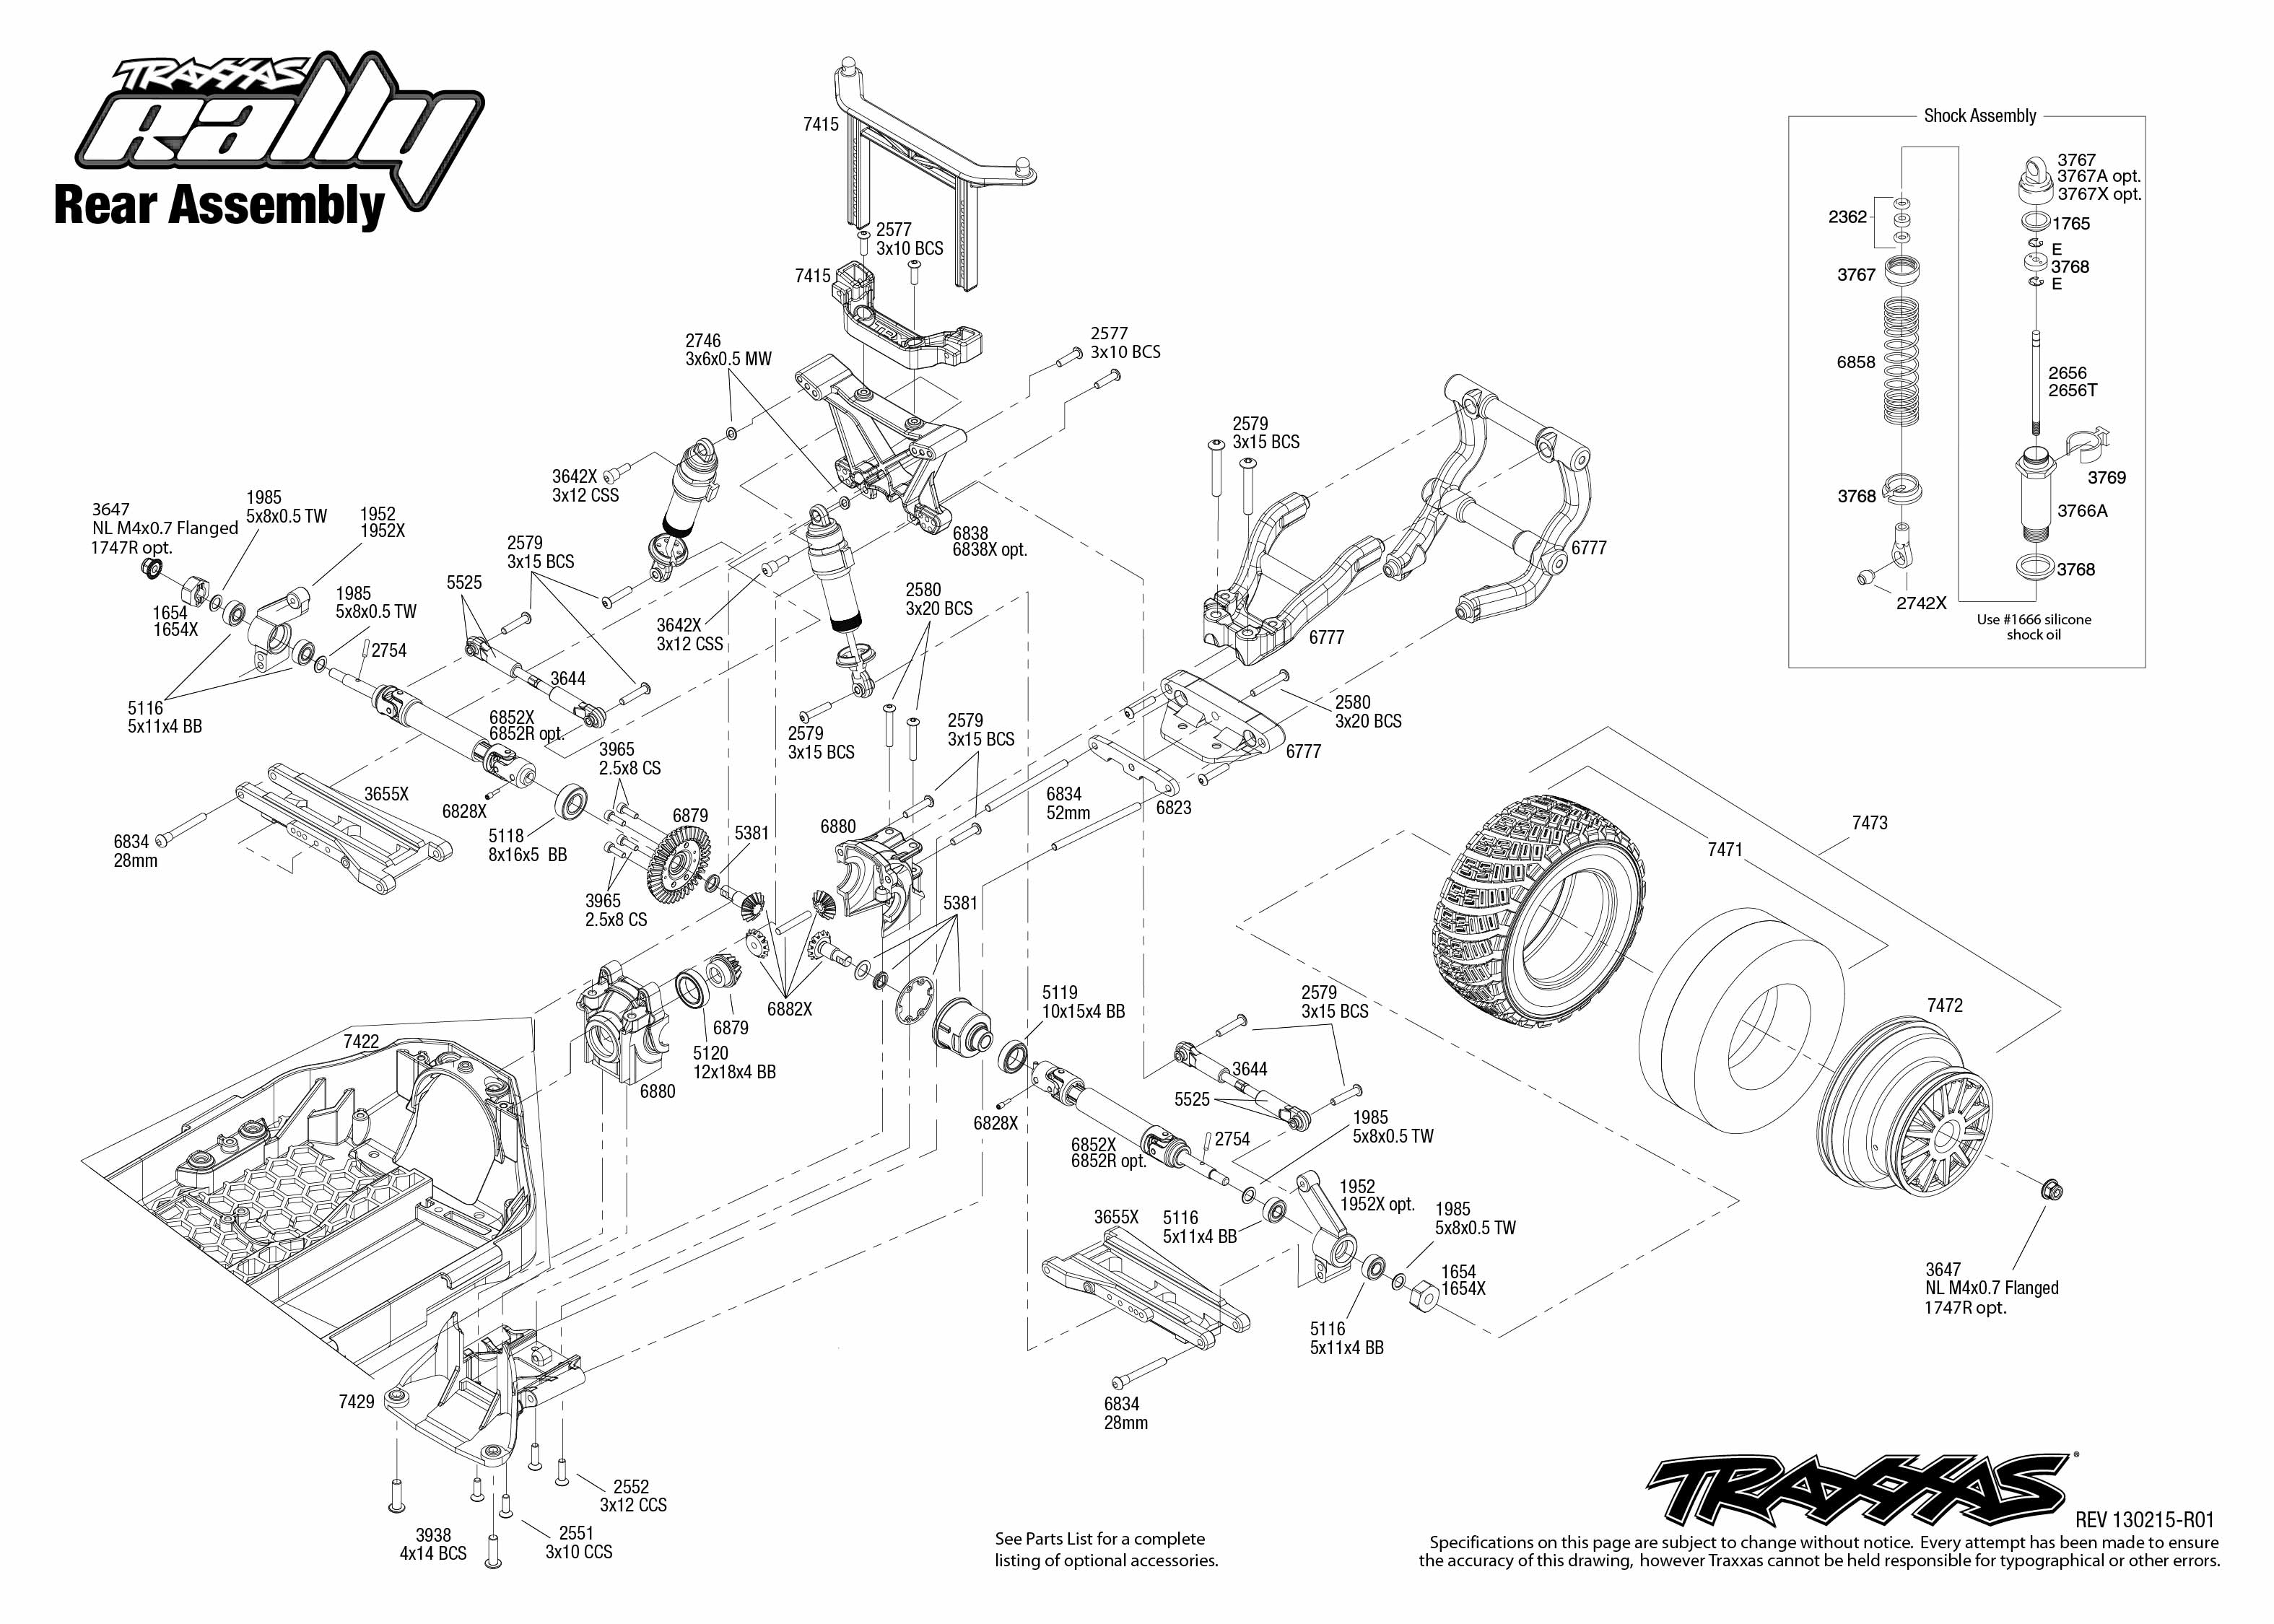 7407 rear exploded view  rally